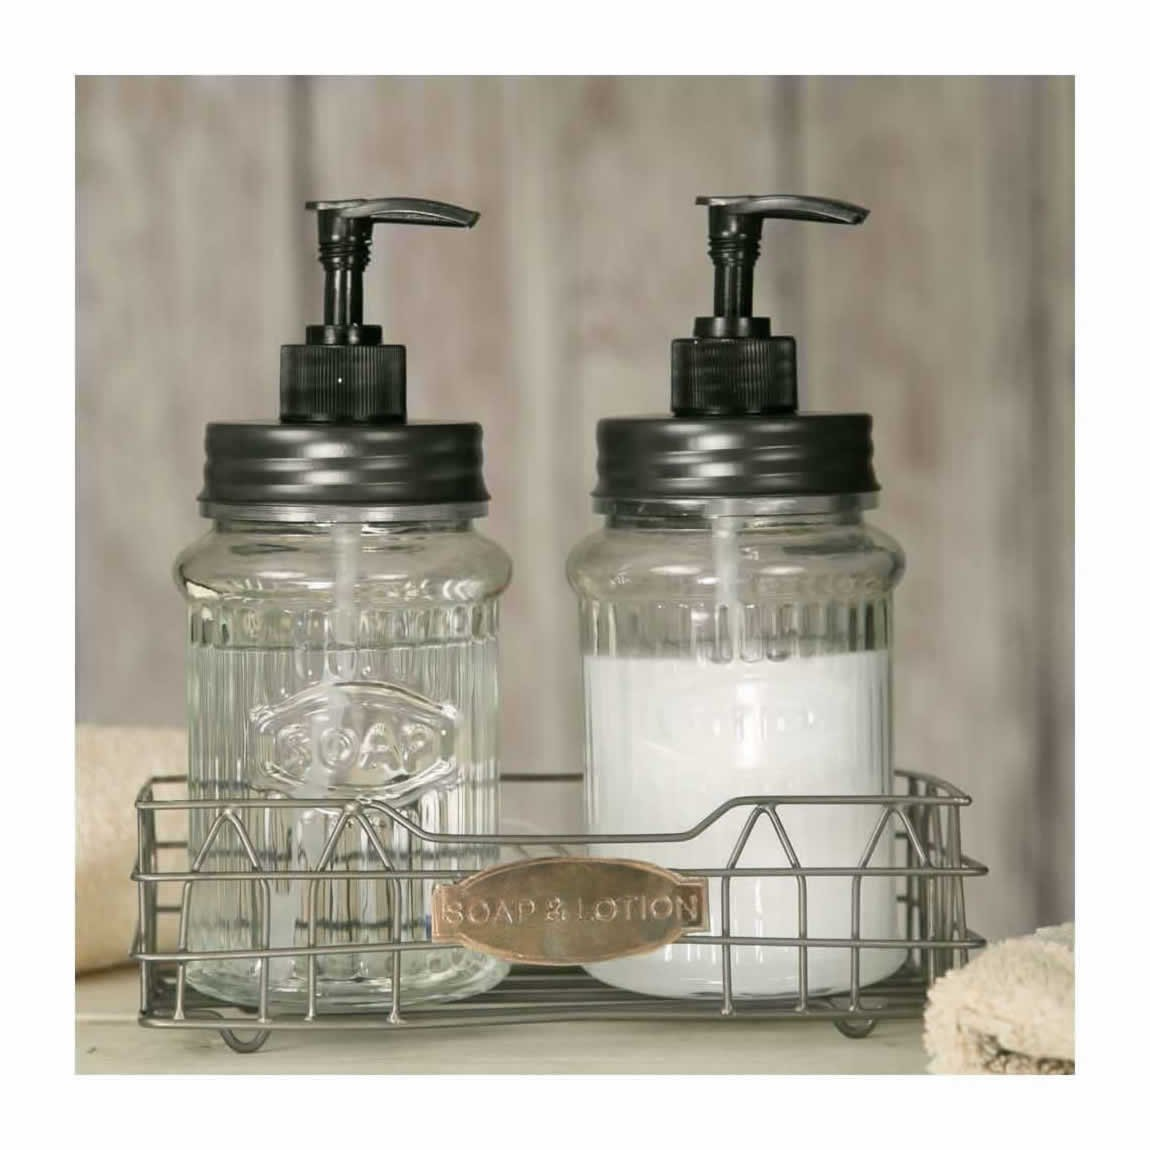 Cheap Hand Soap And Lotion Dispensers Find Hand Soap And Lotion